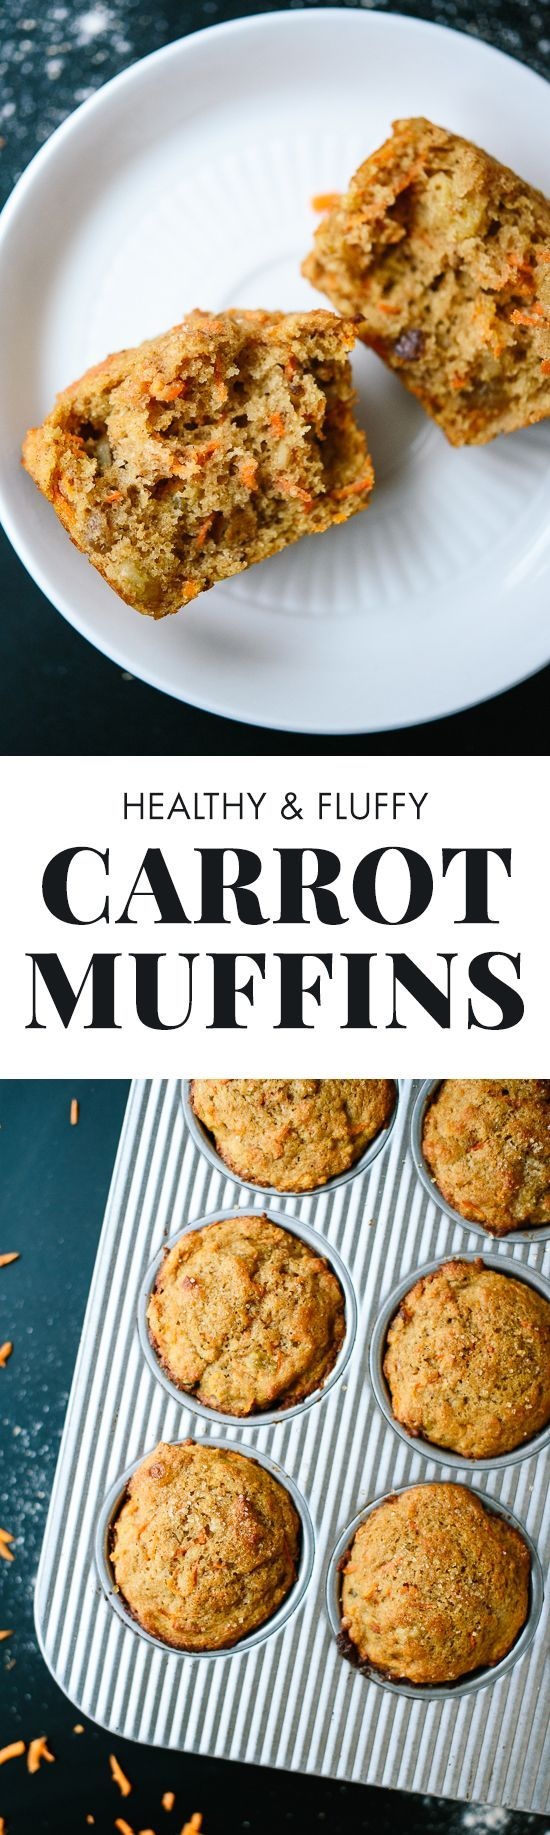 Healthy carrot muffins that taste amazing! These are made with whole wheat flour and sweetened with maple syrup! cookieandkate.com